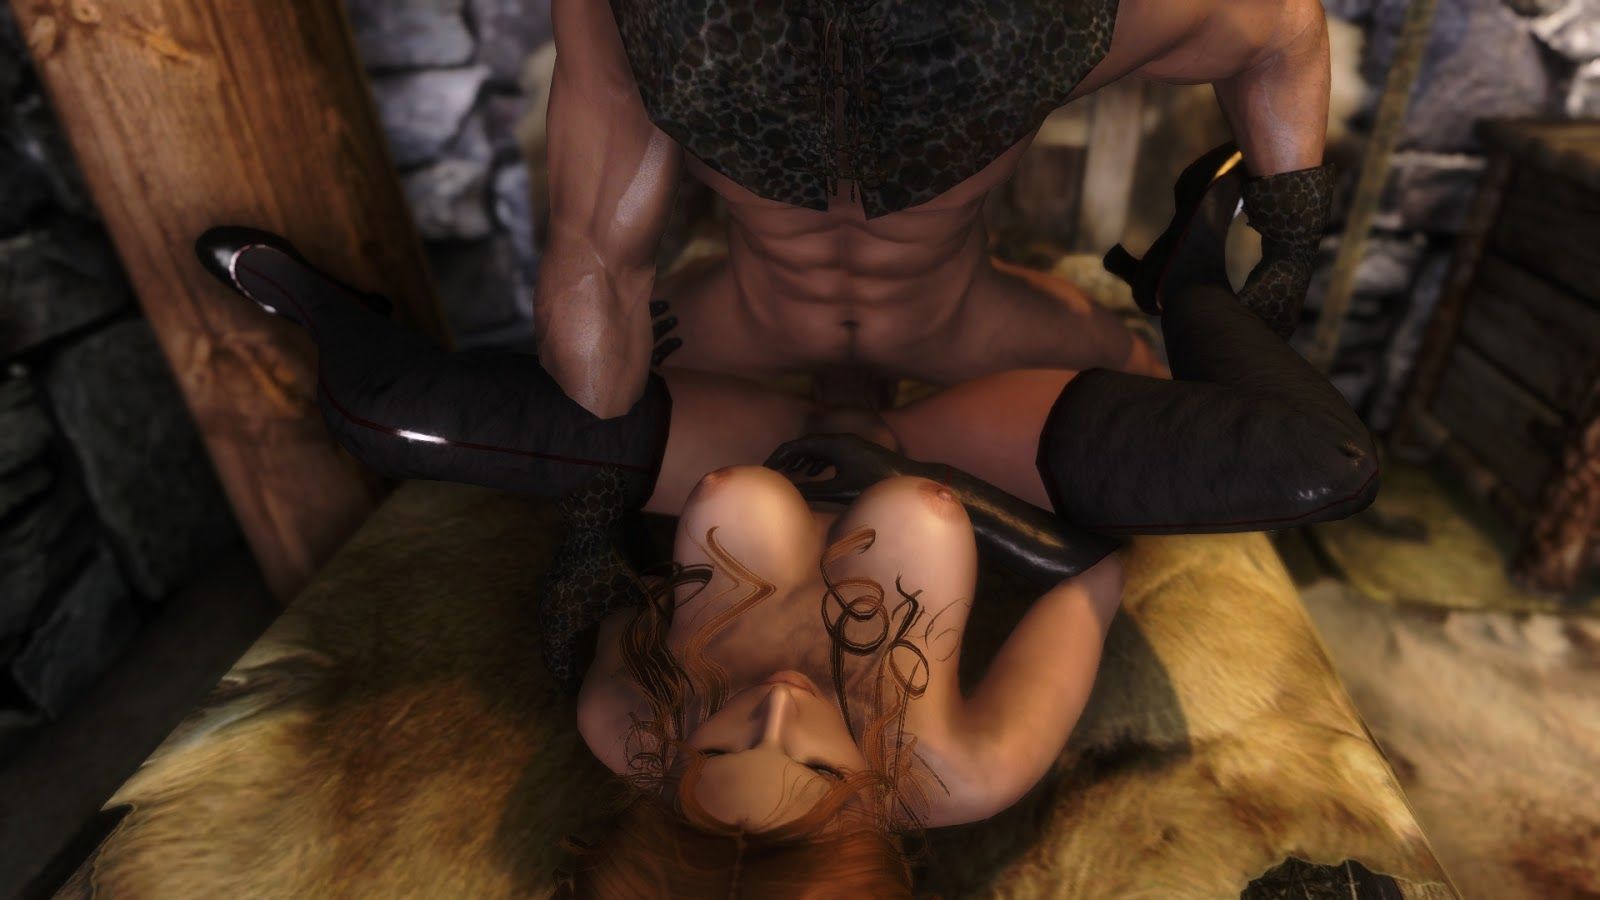 Skyrim porn videos adult gallery